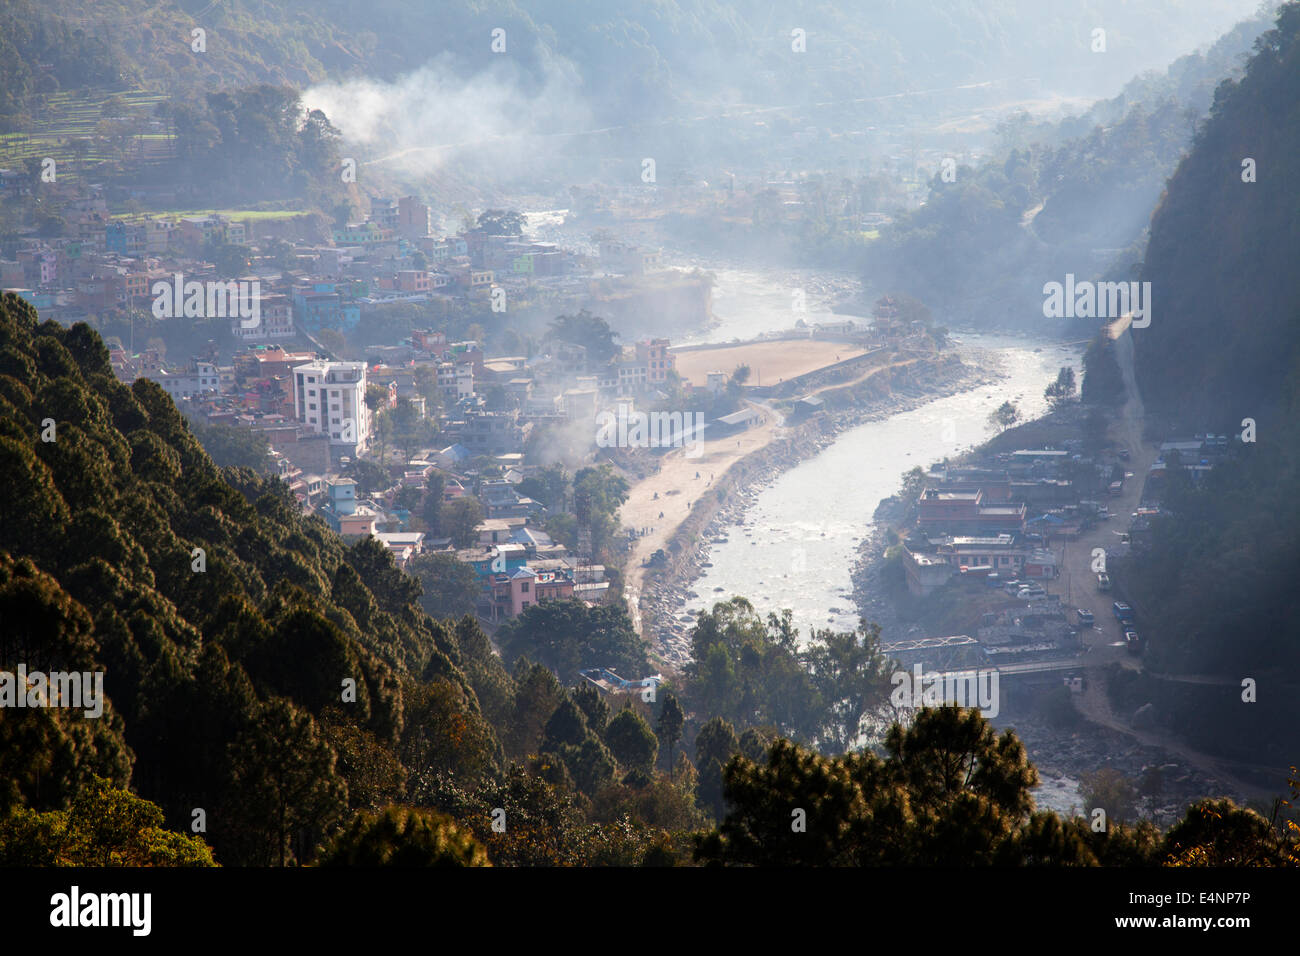 Beni, Myagdi District, Nepal - Stock Image